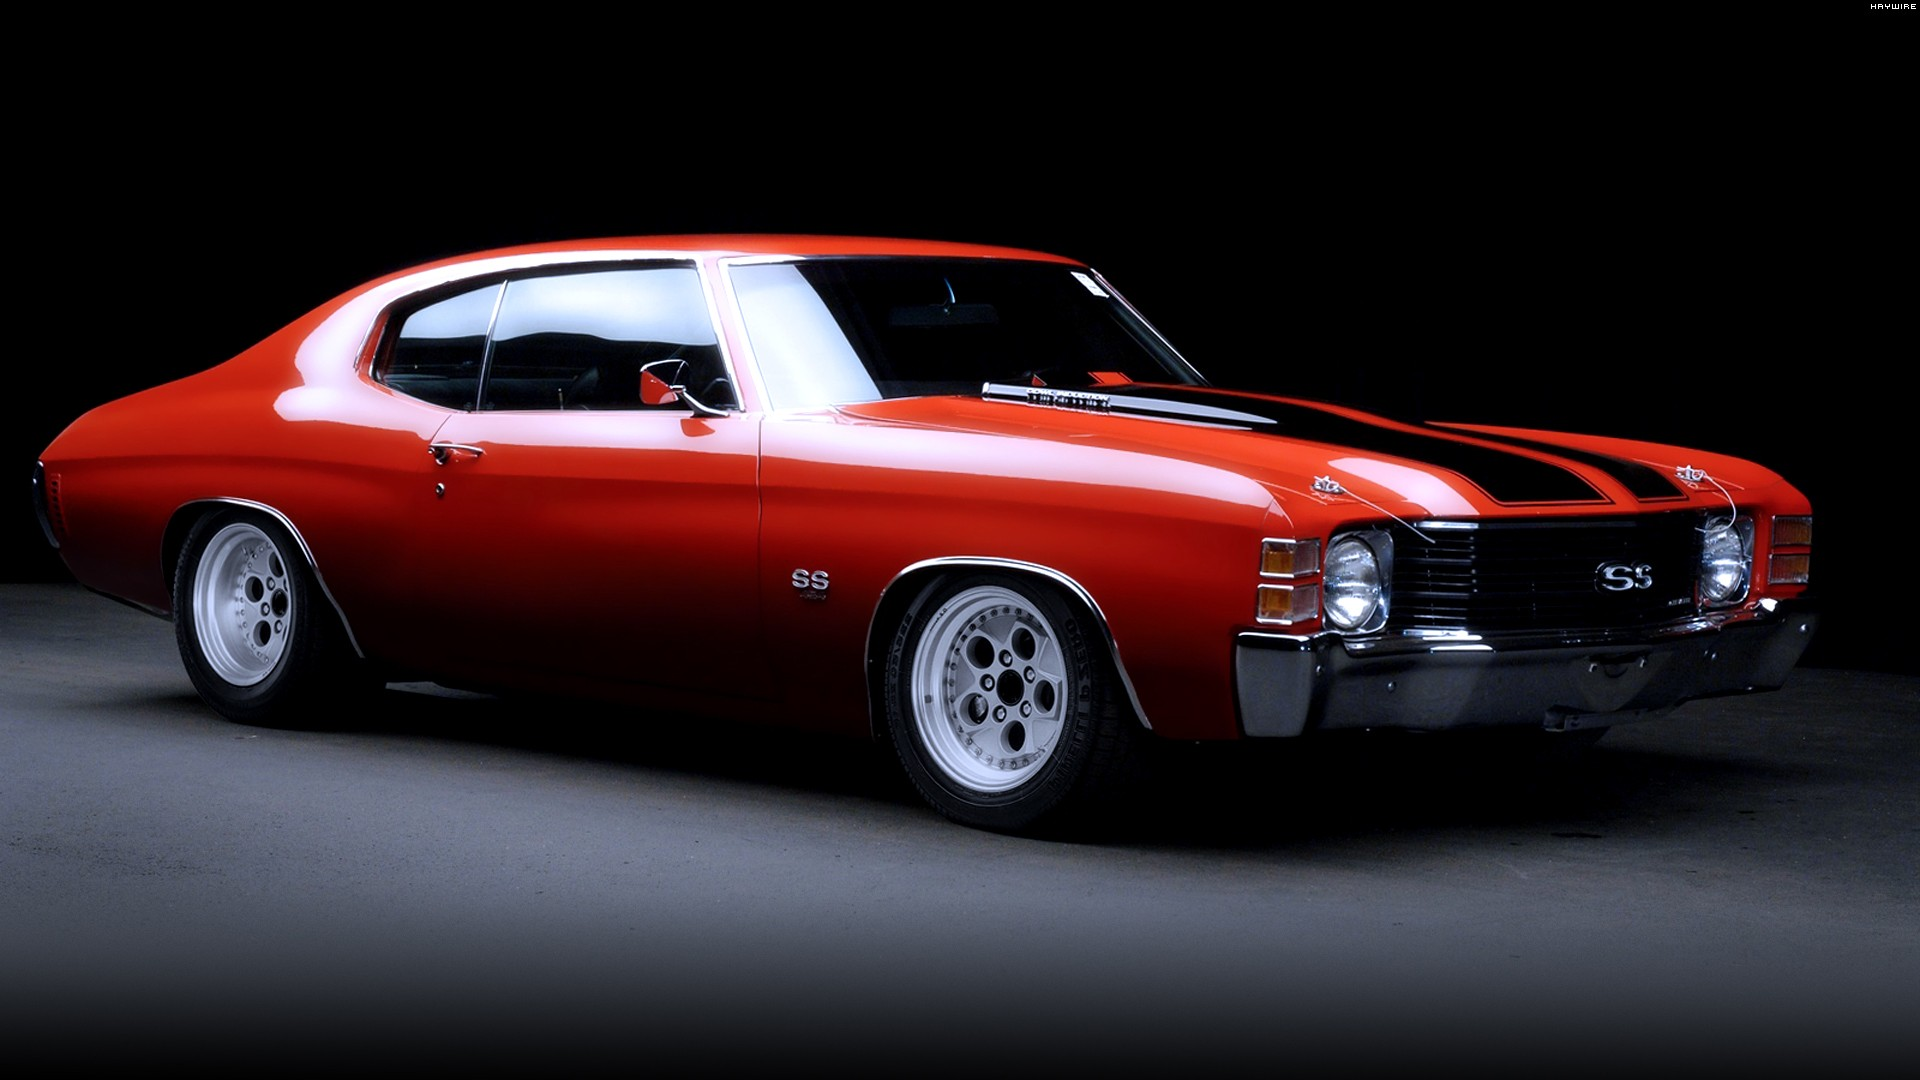 American Muscle Cars - HD - Wallpaper - New Car Nation